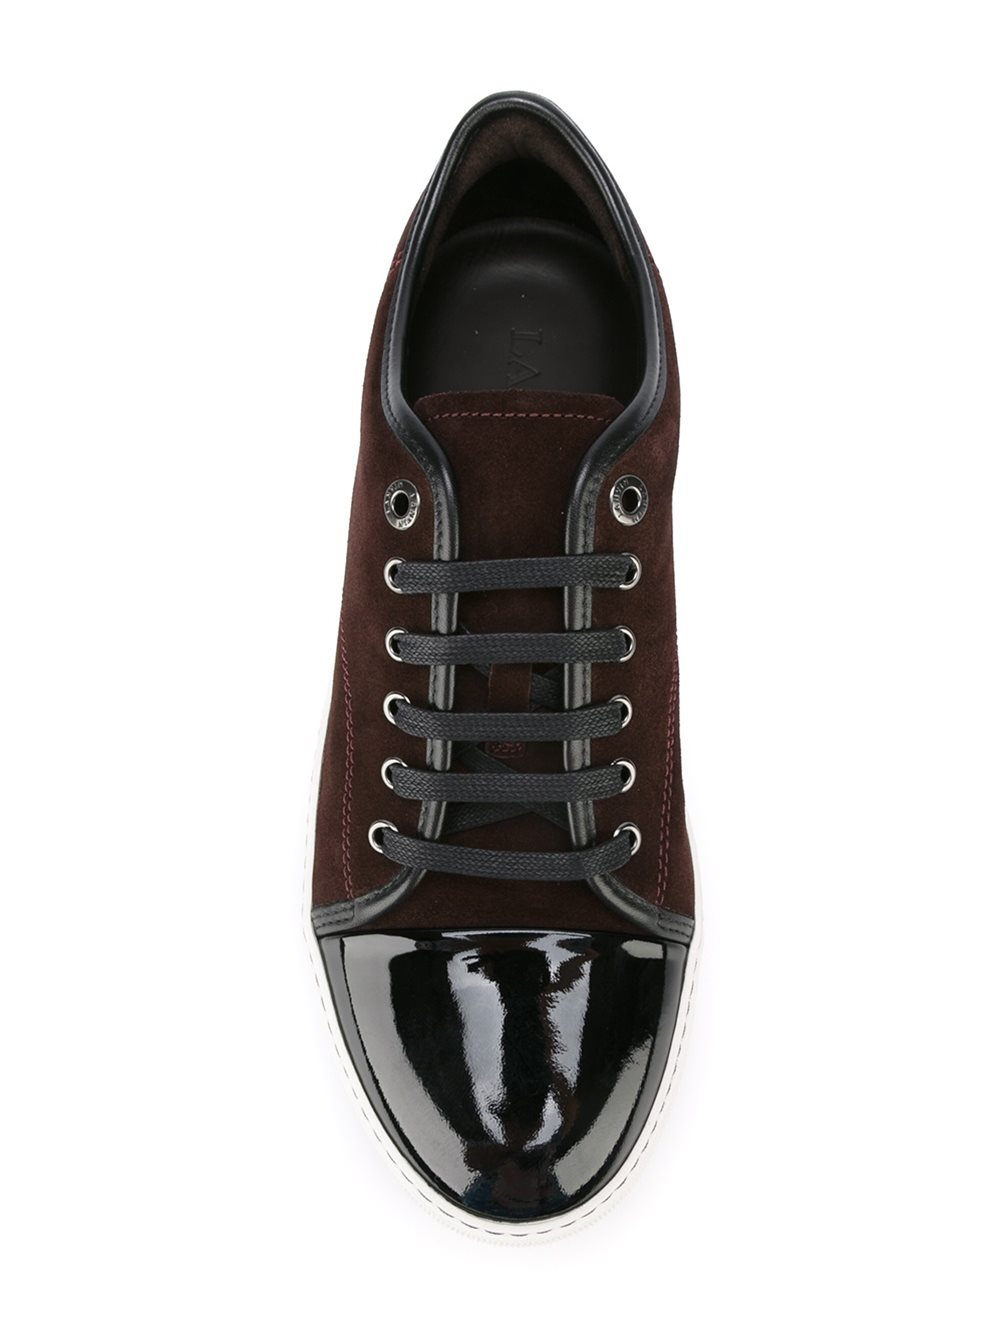 Lyst Lanvin Toe Cap Sneakers In Black For Men